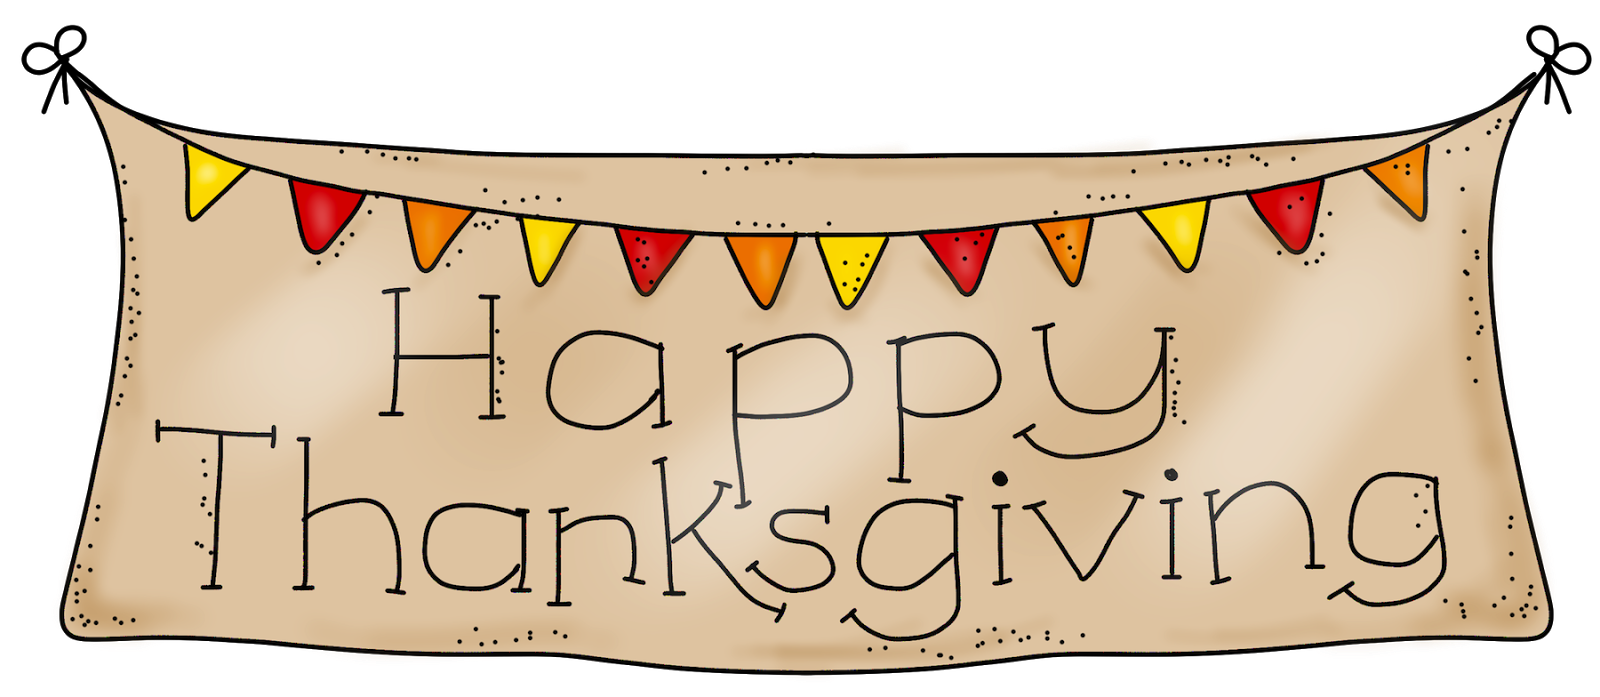 Religious thanksgiving clipart png free stock Thanksgiving Clip Art For Email – Happy Easter & Thanksgiving 2018 png free stock